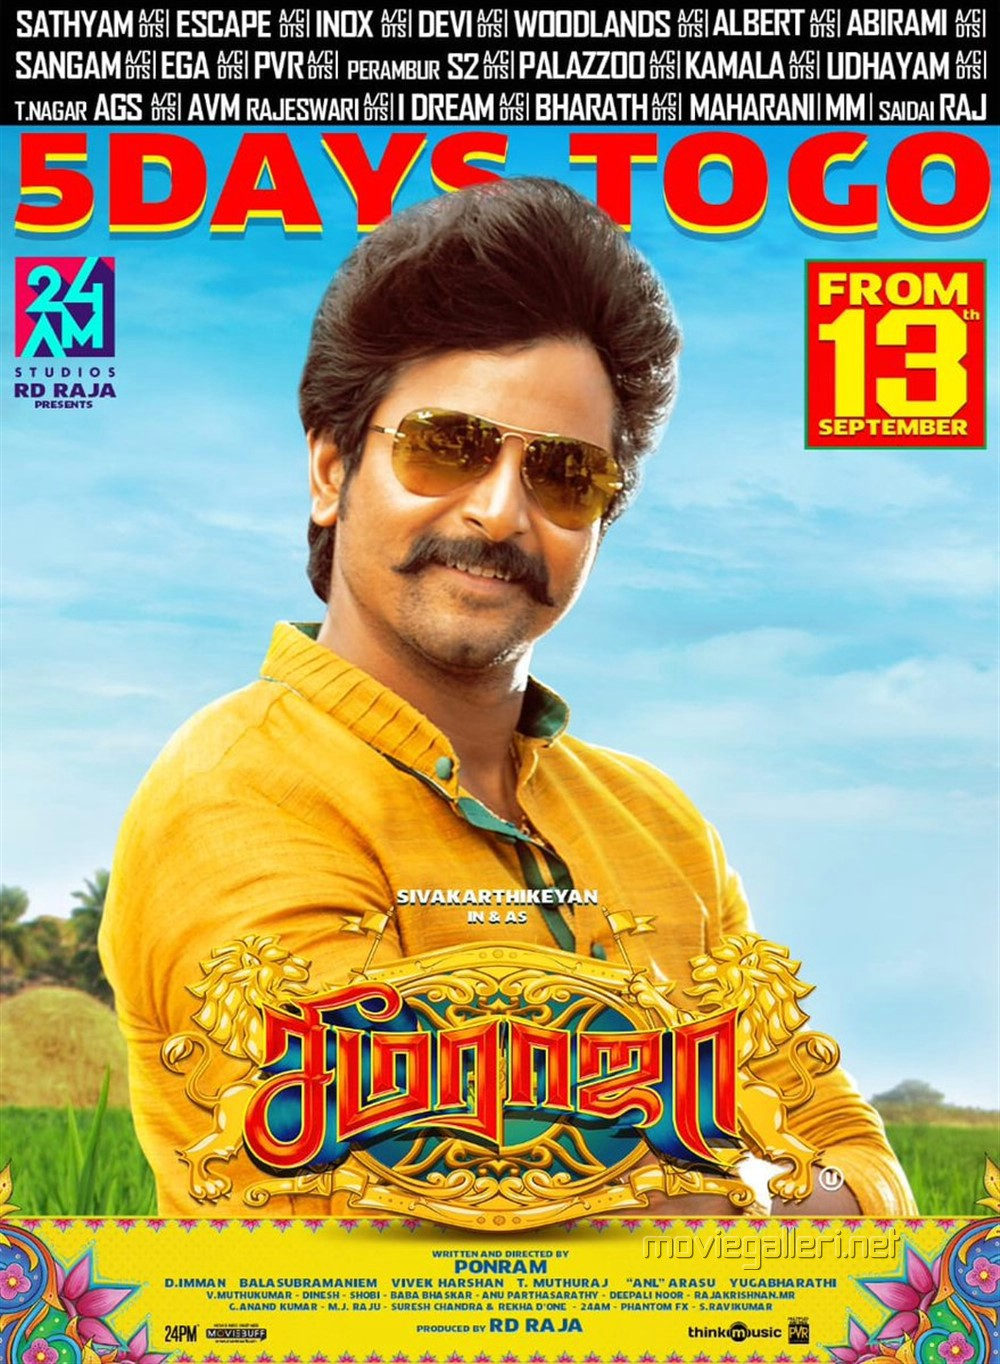 Sivakarthikeyan Seema Raja Thiruvizha in 5 Days Poster